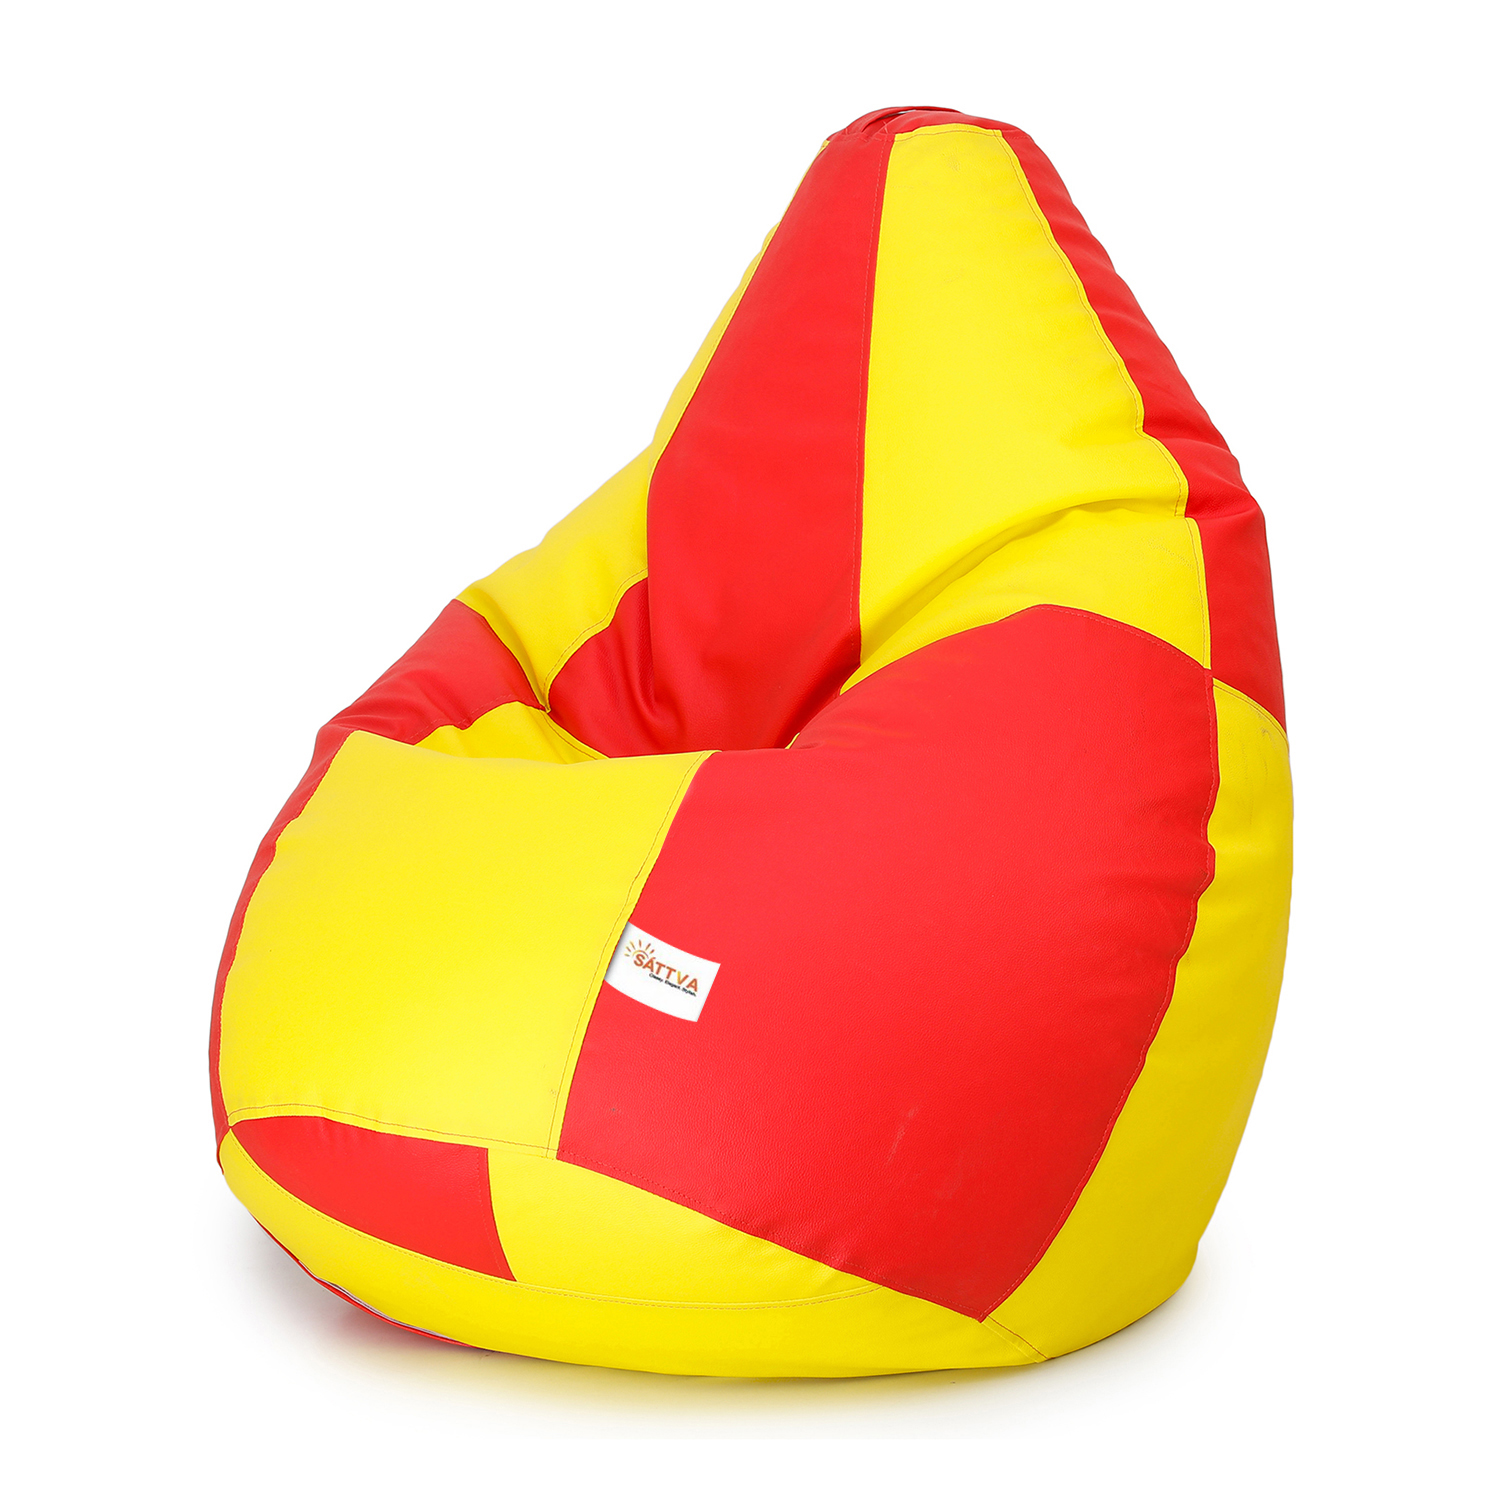 Sattva Classic XXXL Bean Bag Filled (with Beans) Colour - Red Yellow Check